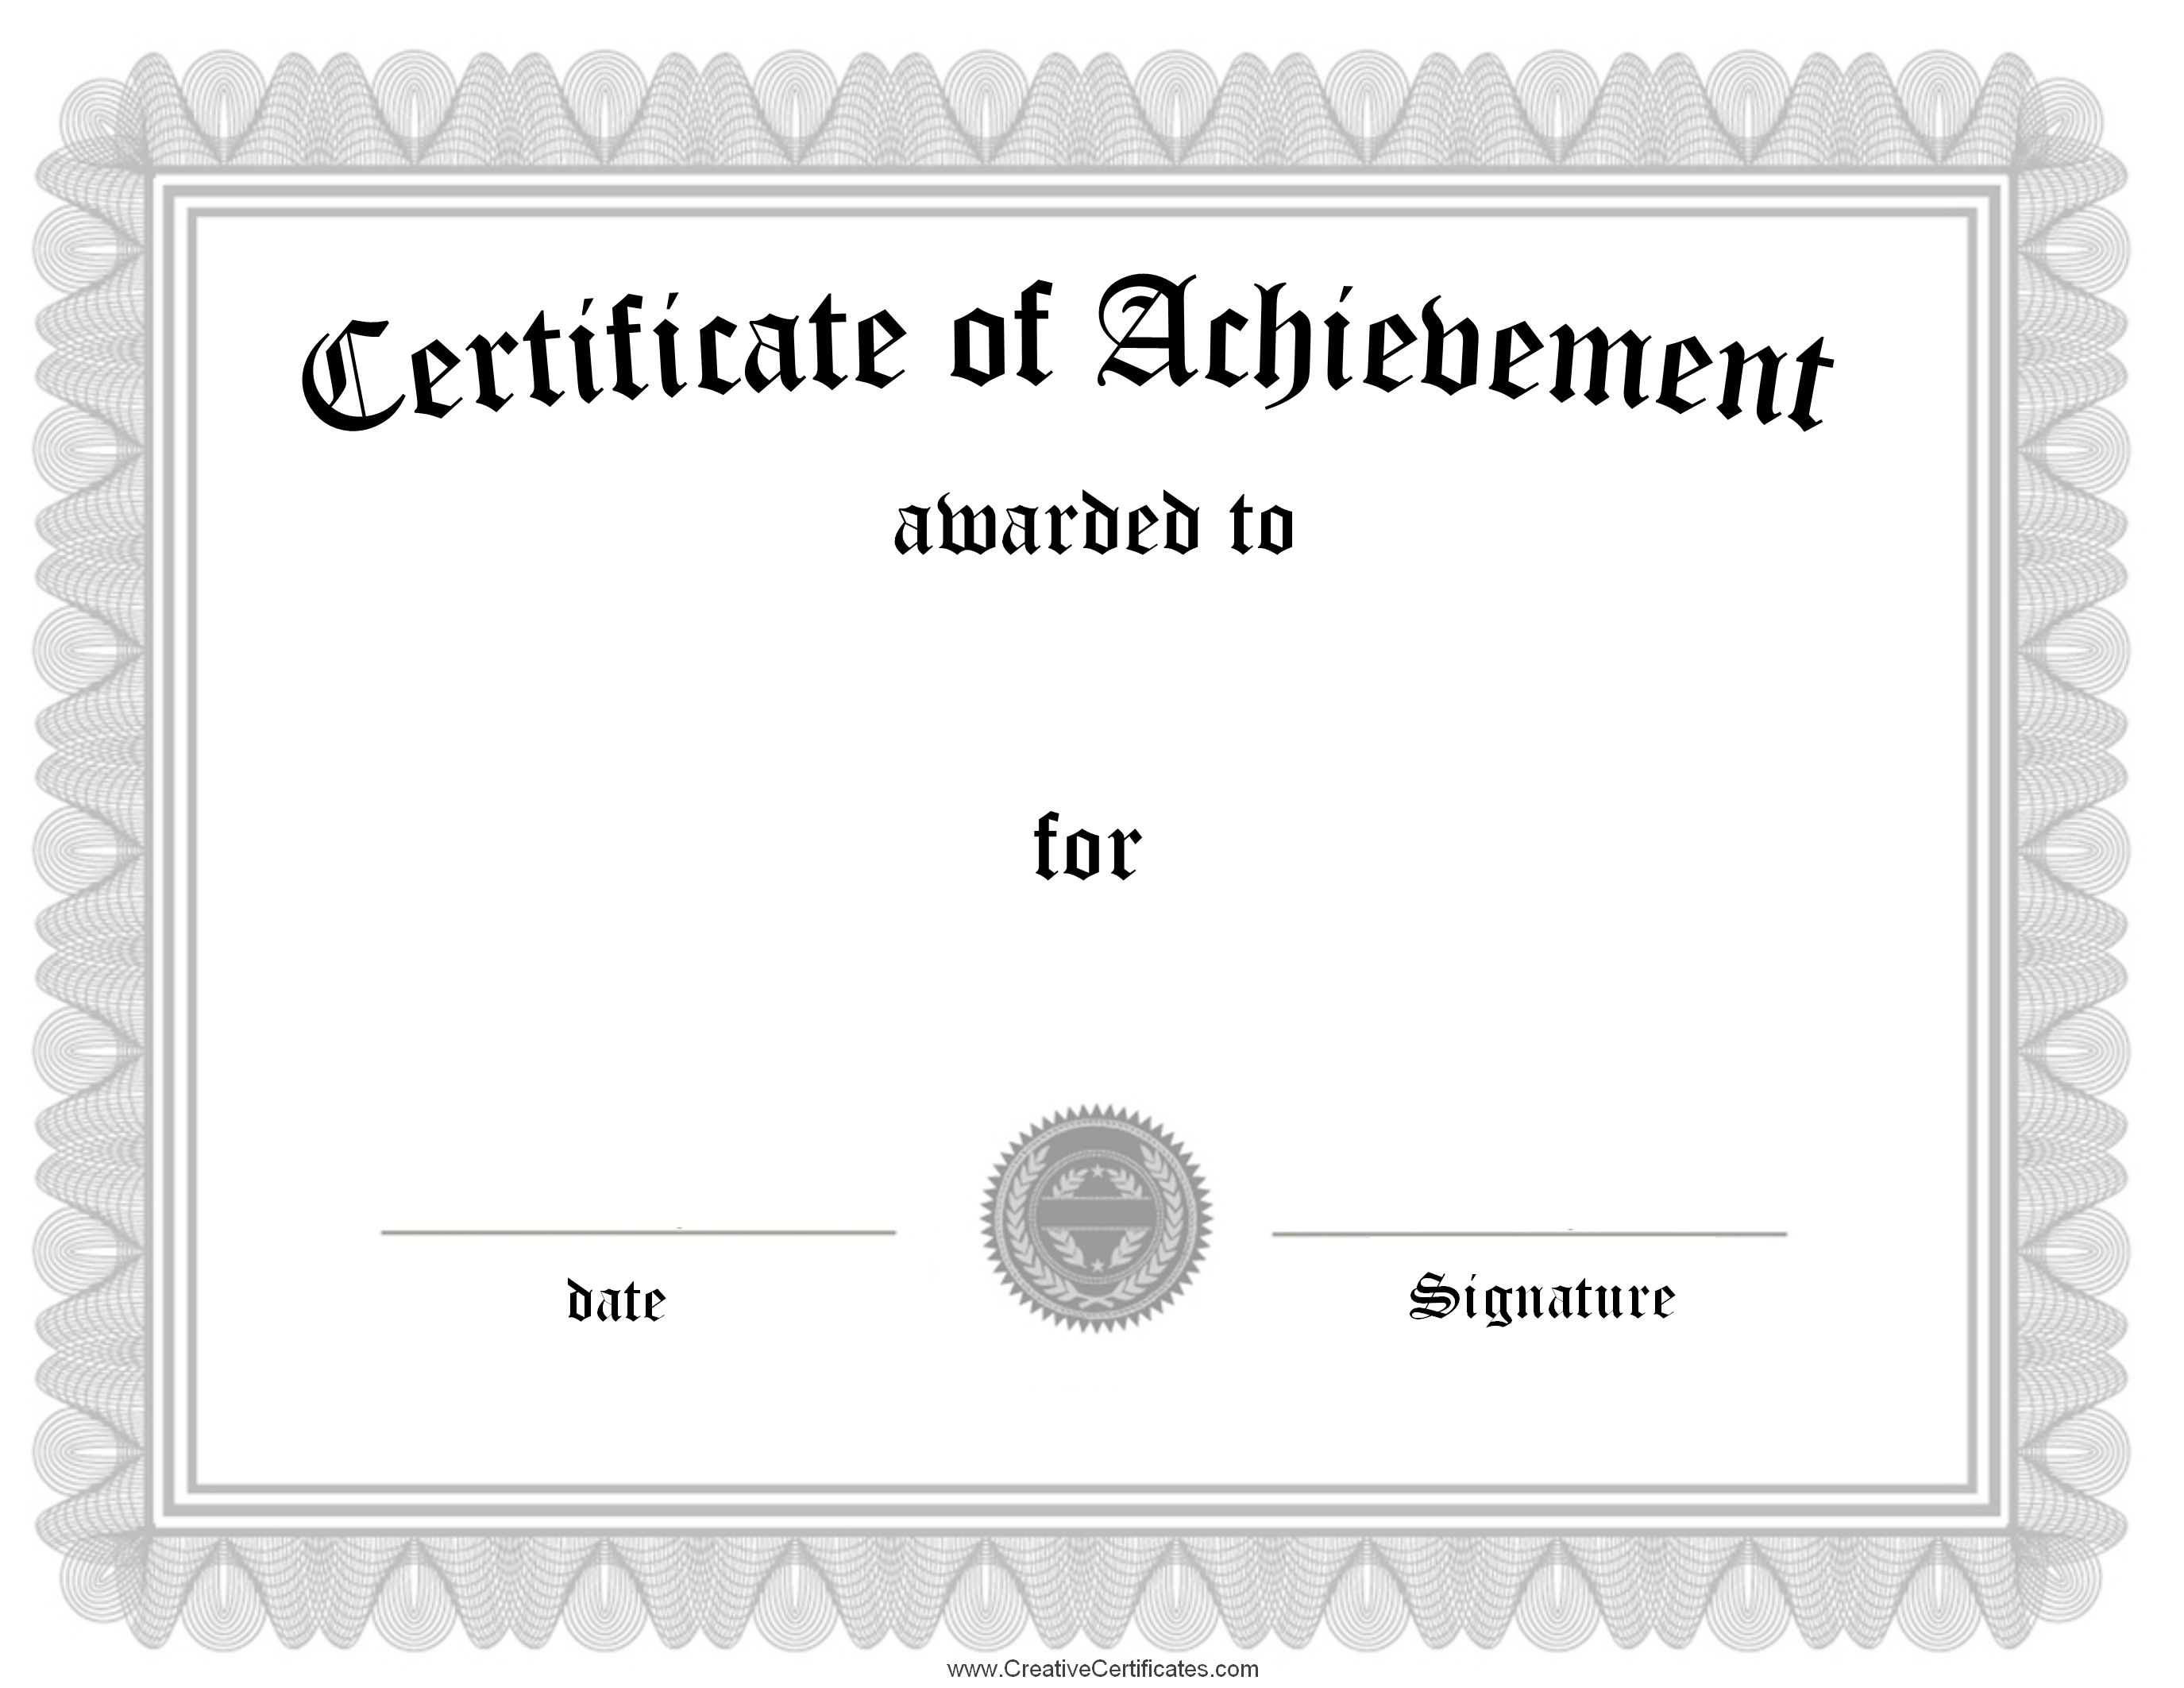 Silver certificate of achievement template samplesg 27502125 silver certificate of achievement template samplesg 2750 yadclub Choice Image